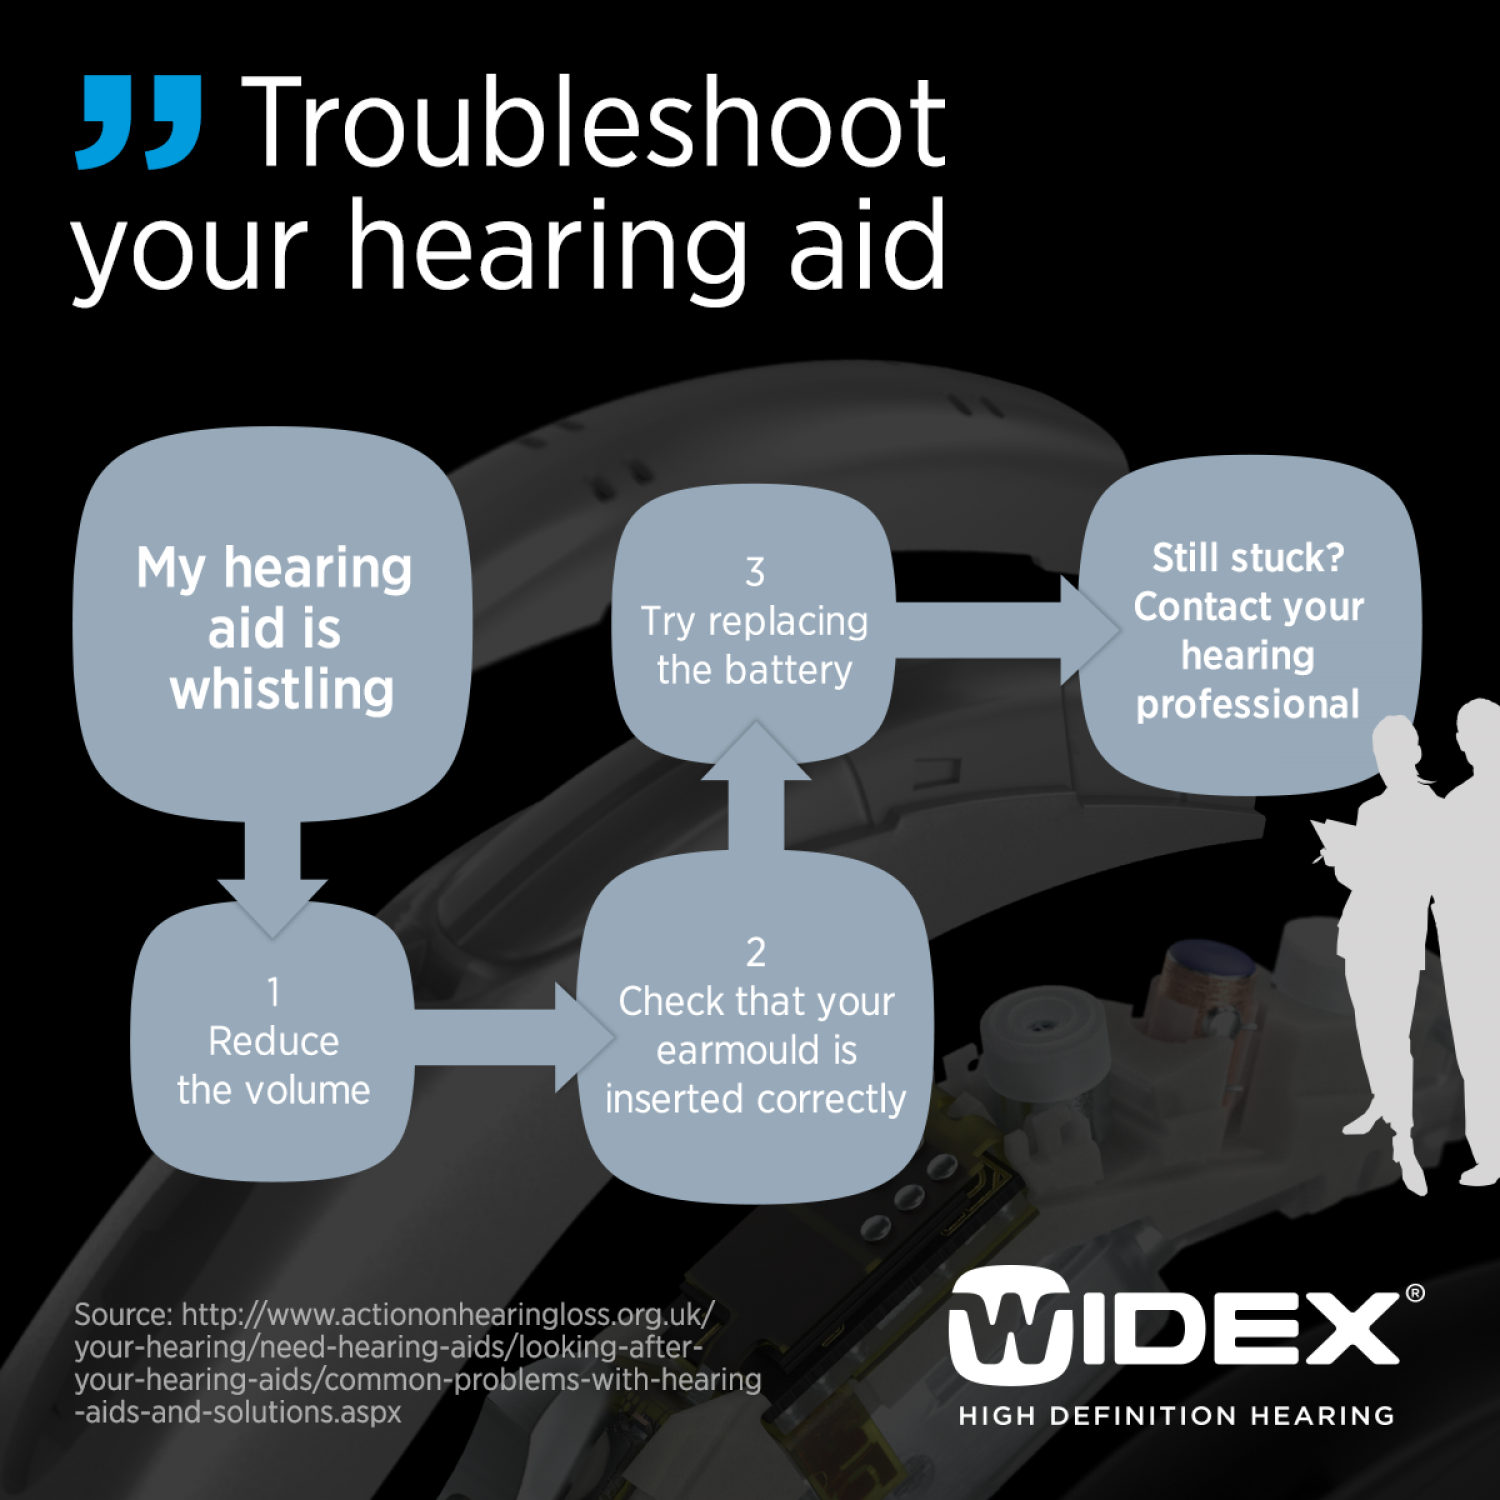 Hearing Aid Troubleshooting Infographic